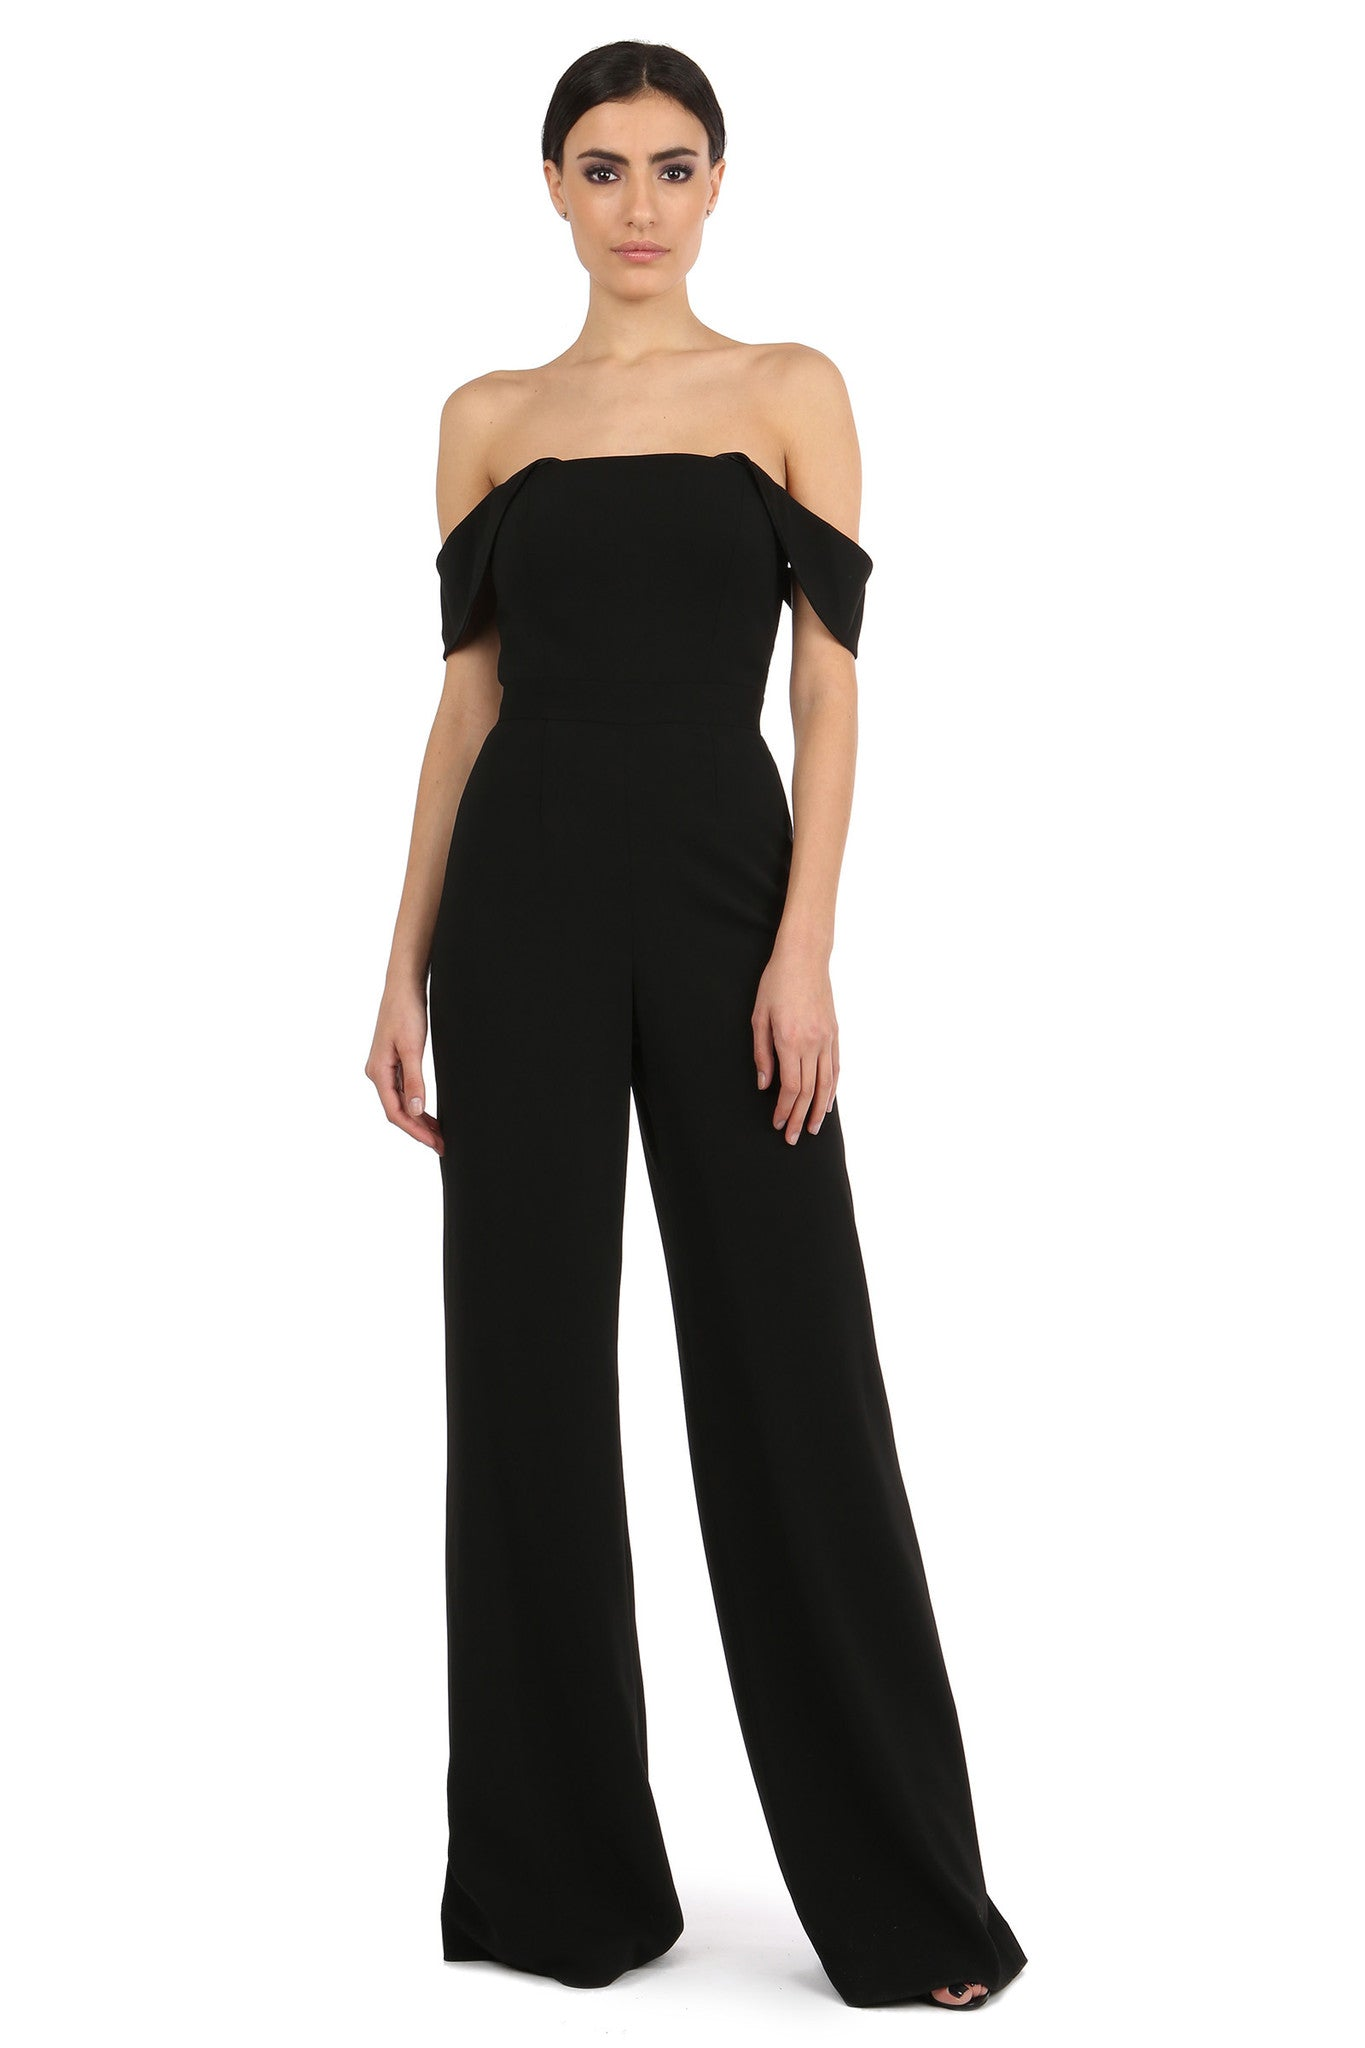 Jay Godfrey Black Off-the-Shoulder Romper - Front View